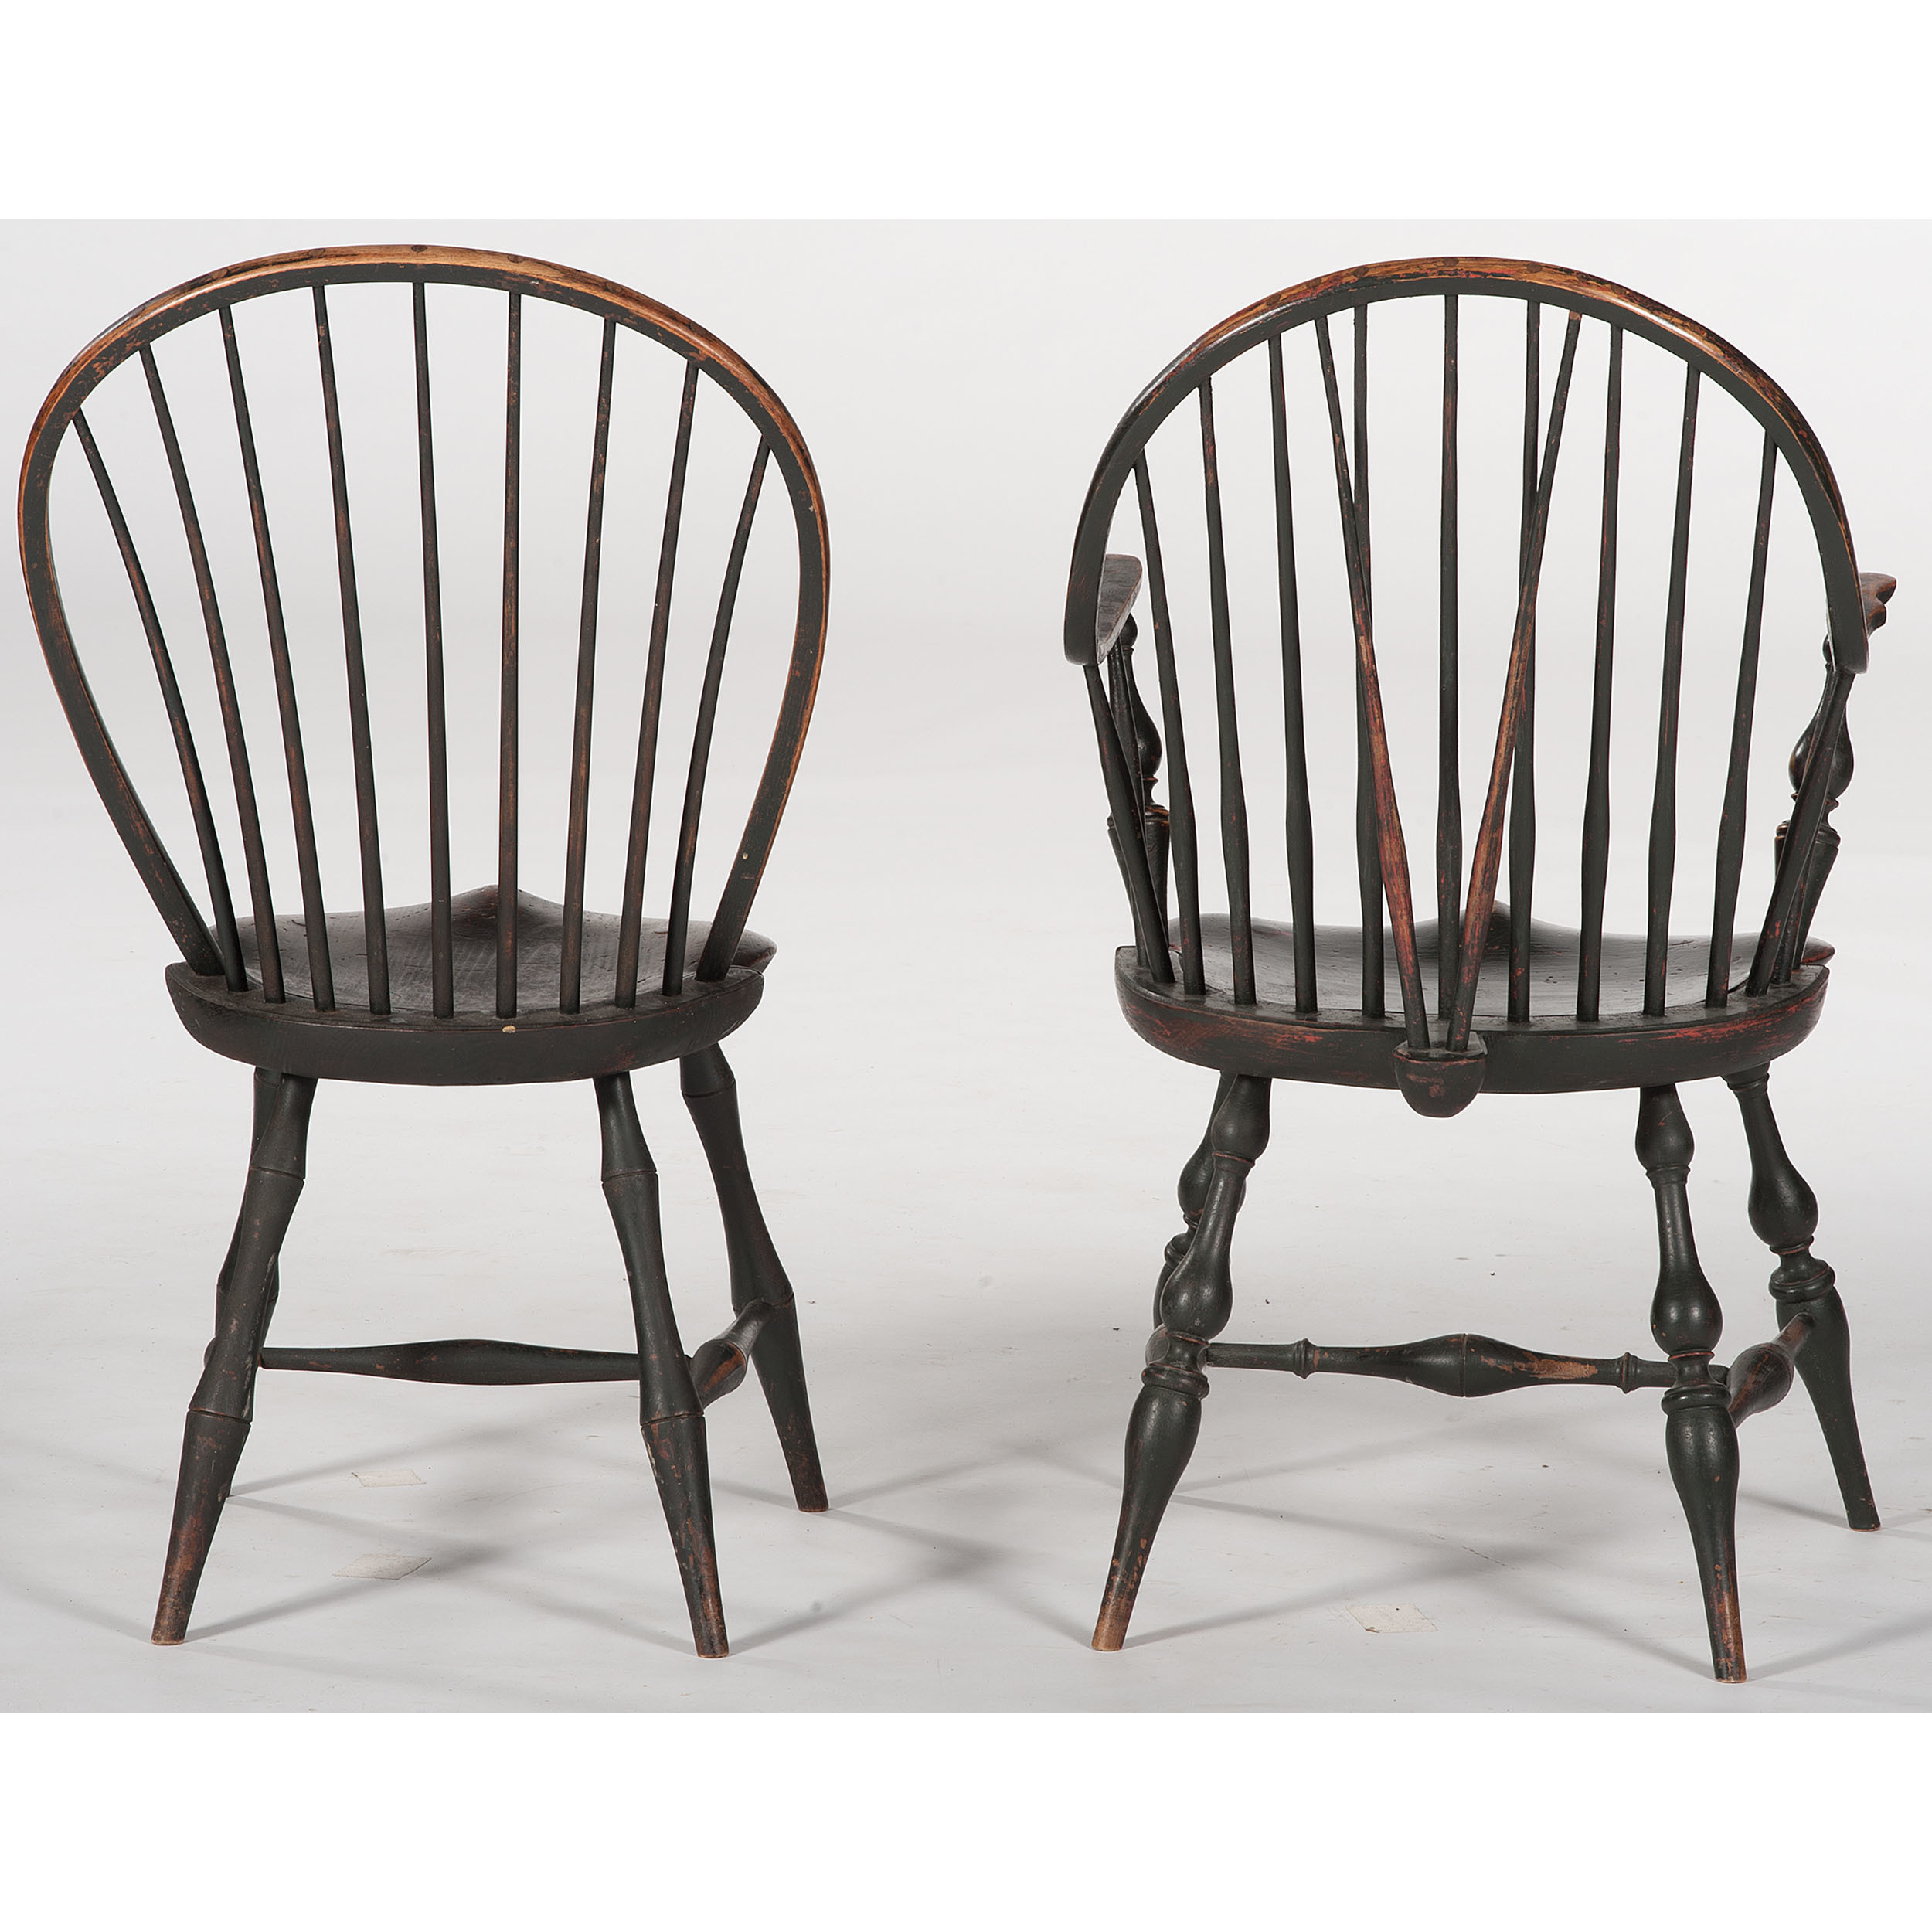 Bowback Windsor Chairs by D.R. Dimes  sc 1 st  Cowanu0027s Auctions & Bowback Windsor Chairs by D.R. Dimes | Cowanu0027s Auction House: The ...